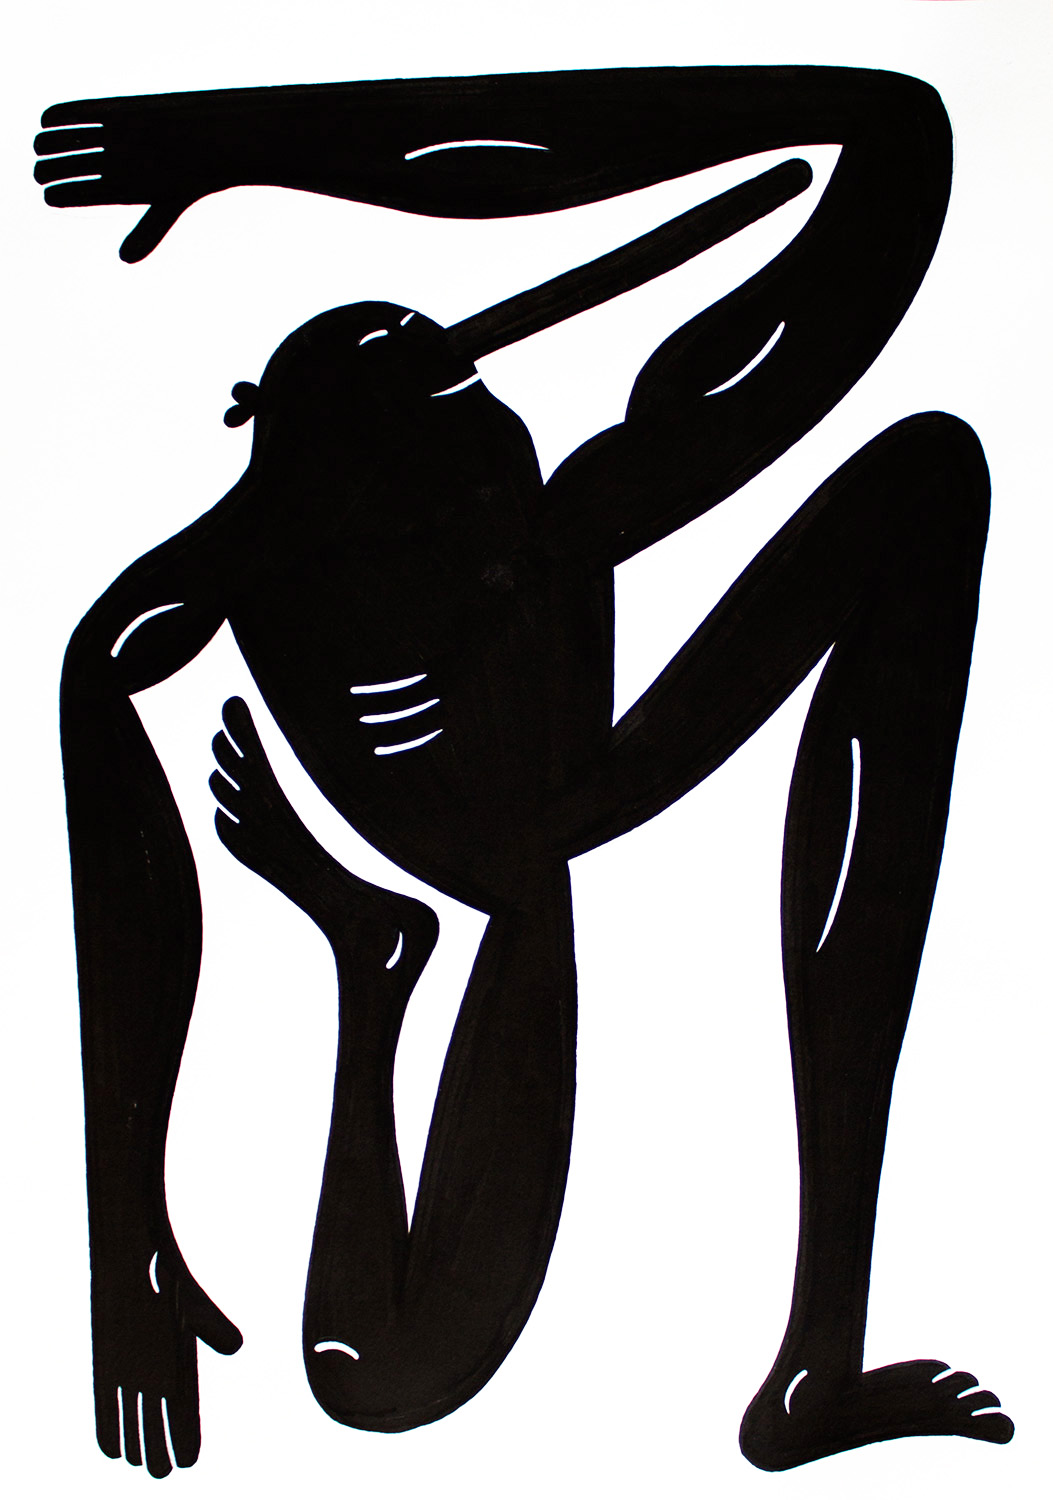 drawings, figurative, monochrome, portraiture, bodies, humor, black, white, ink, paper, abstract-forms, amusing, black-and-white, Buy original high quality art. Paintings, drawings, limited edition prints & posters by talented artists.